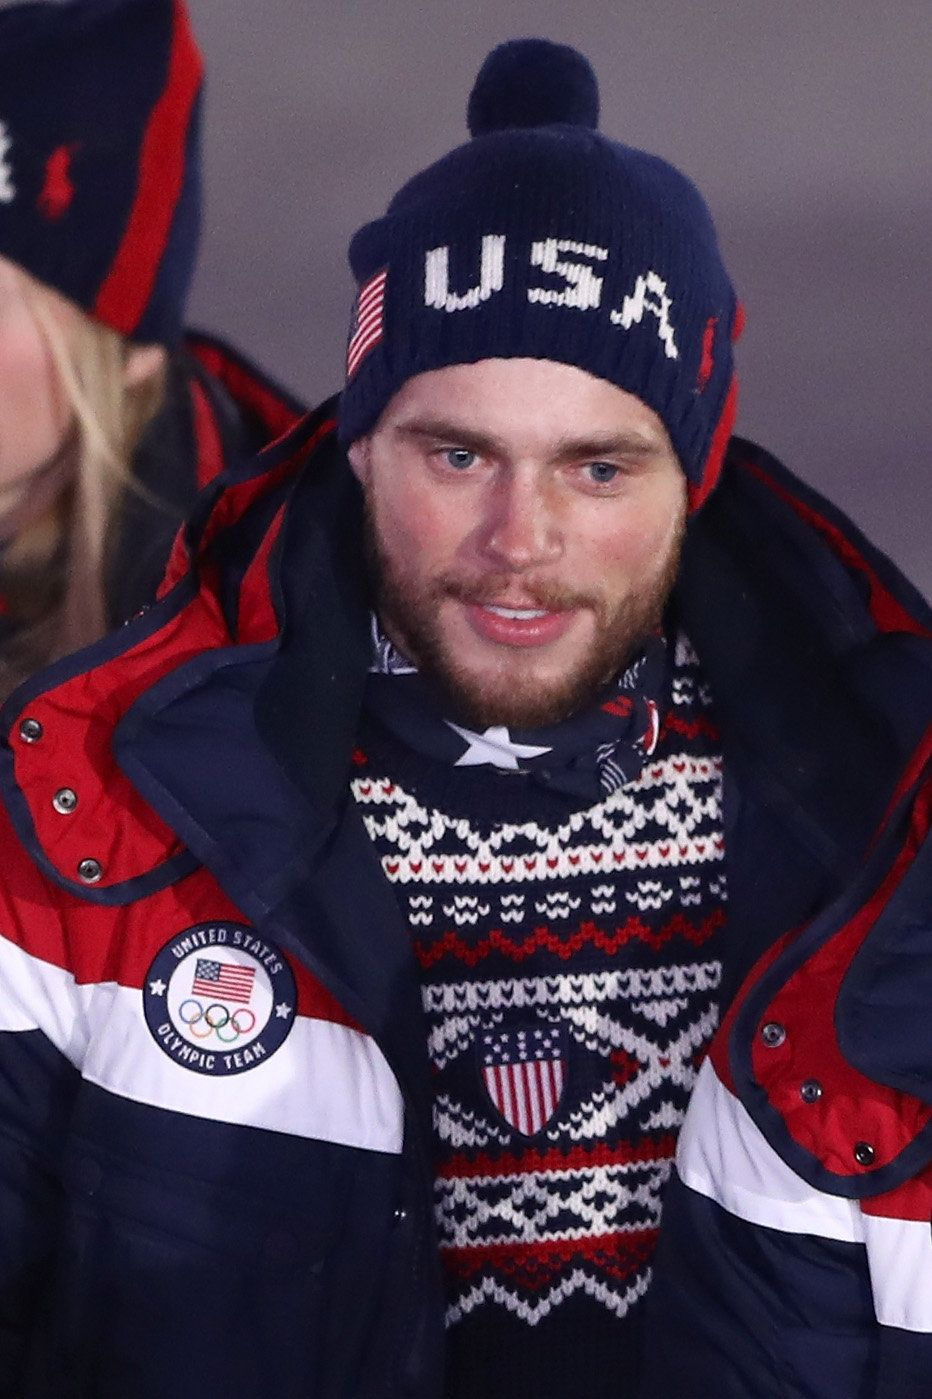 PYEONGCHANG-GUN, SOUTH KOREA - FEBRUARY 09:  Gus Kenworthy of the United States enters the stadium during the Opening Ceremony of the PyeongChang 2018 Winter Olympic Games at PyeongChang Olympic Stadium on February 9, 2018 in Pyeongchang-gun, South Korea.  (Photo by Ryan Pierse/Getty Images)